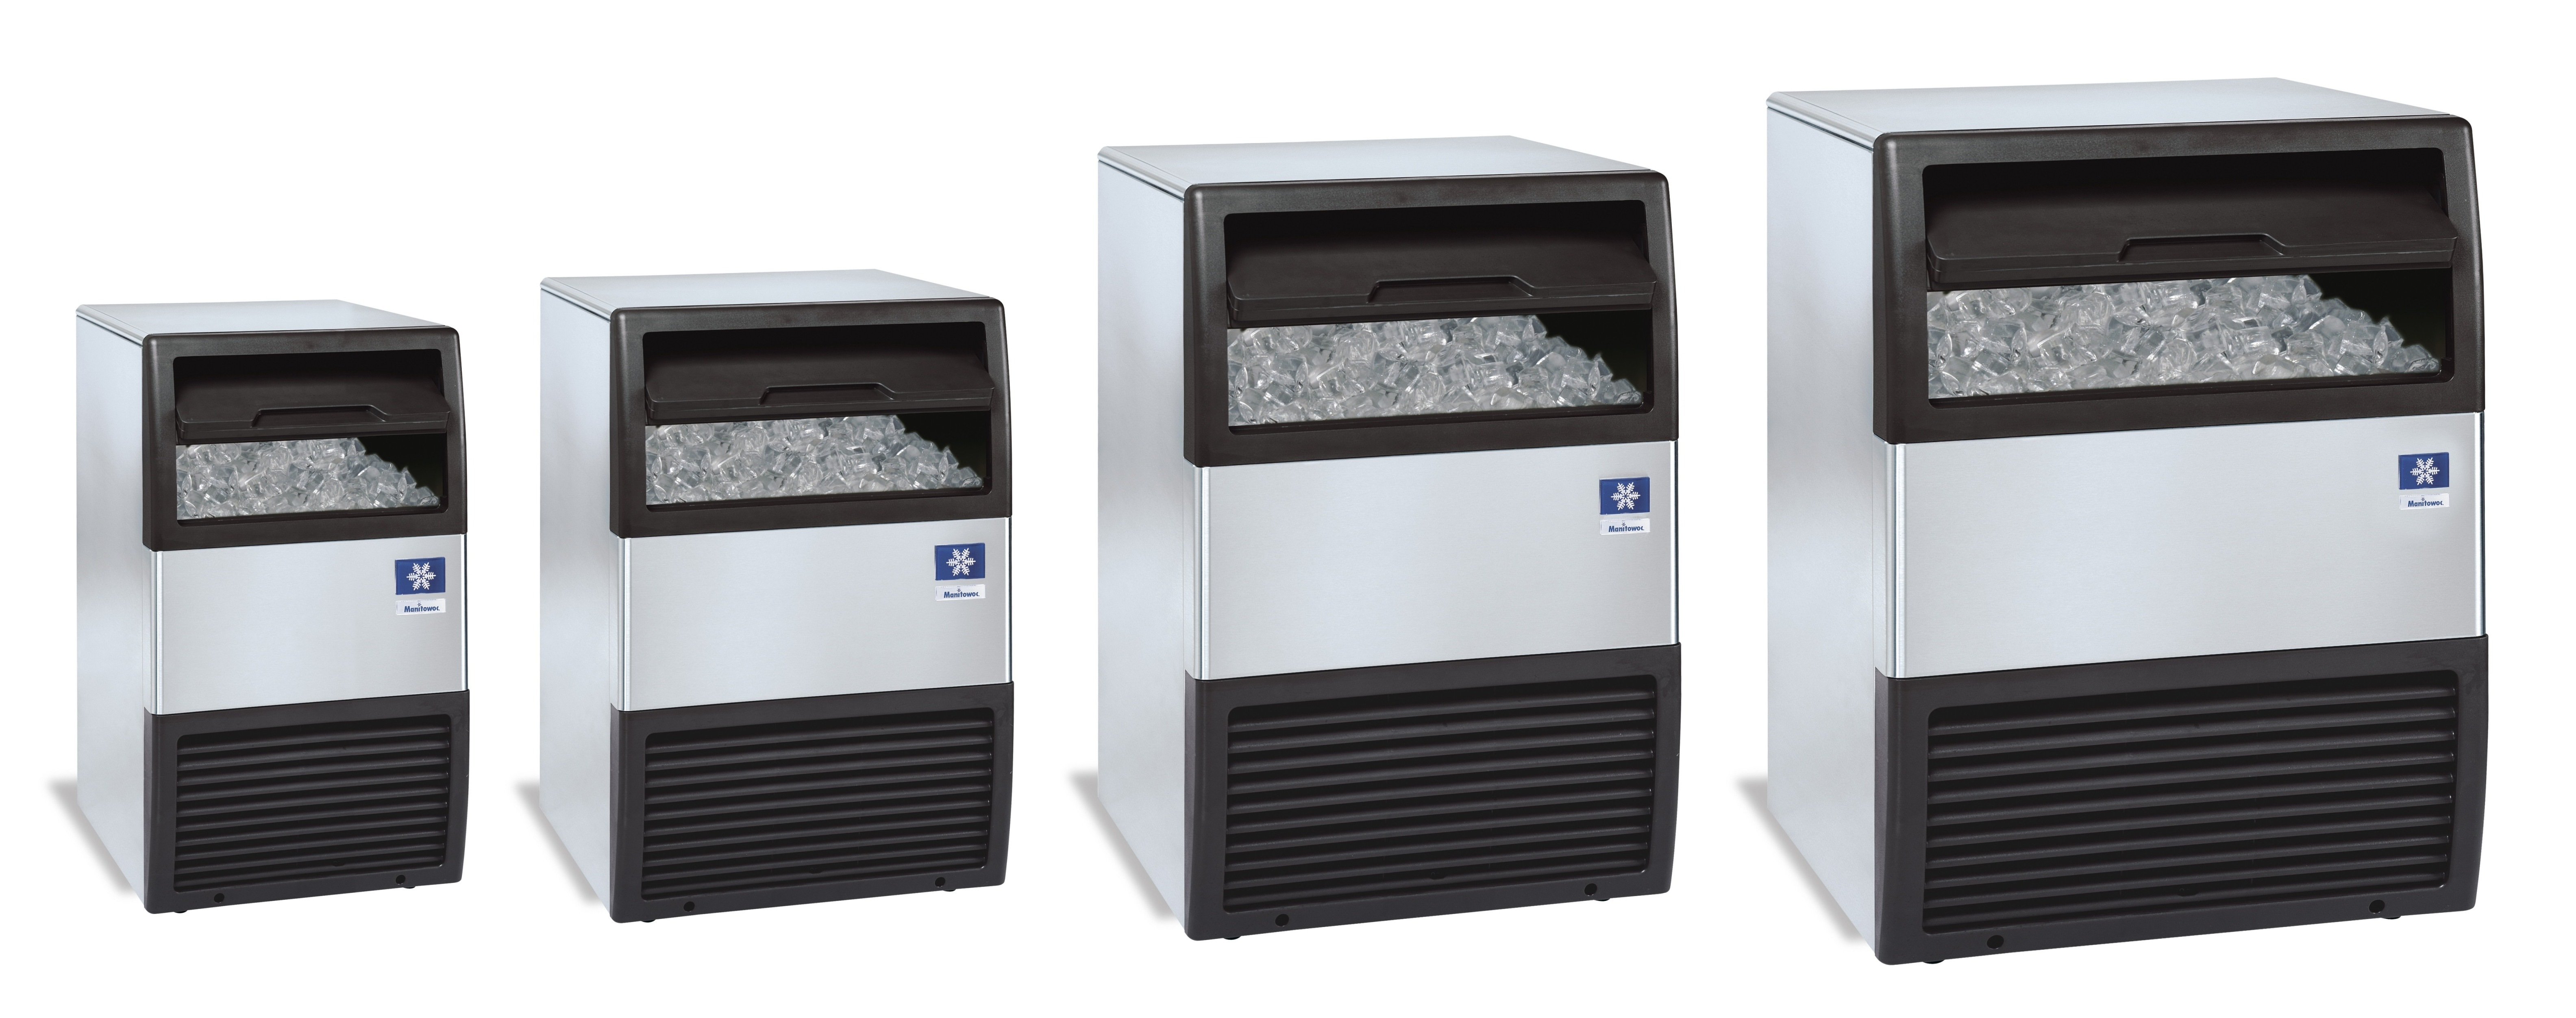 Manitowoc Countertop Ice Maker : Manitowoc?s SN12 countertop nugget ice maker and dispenser